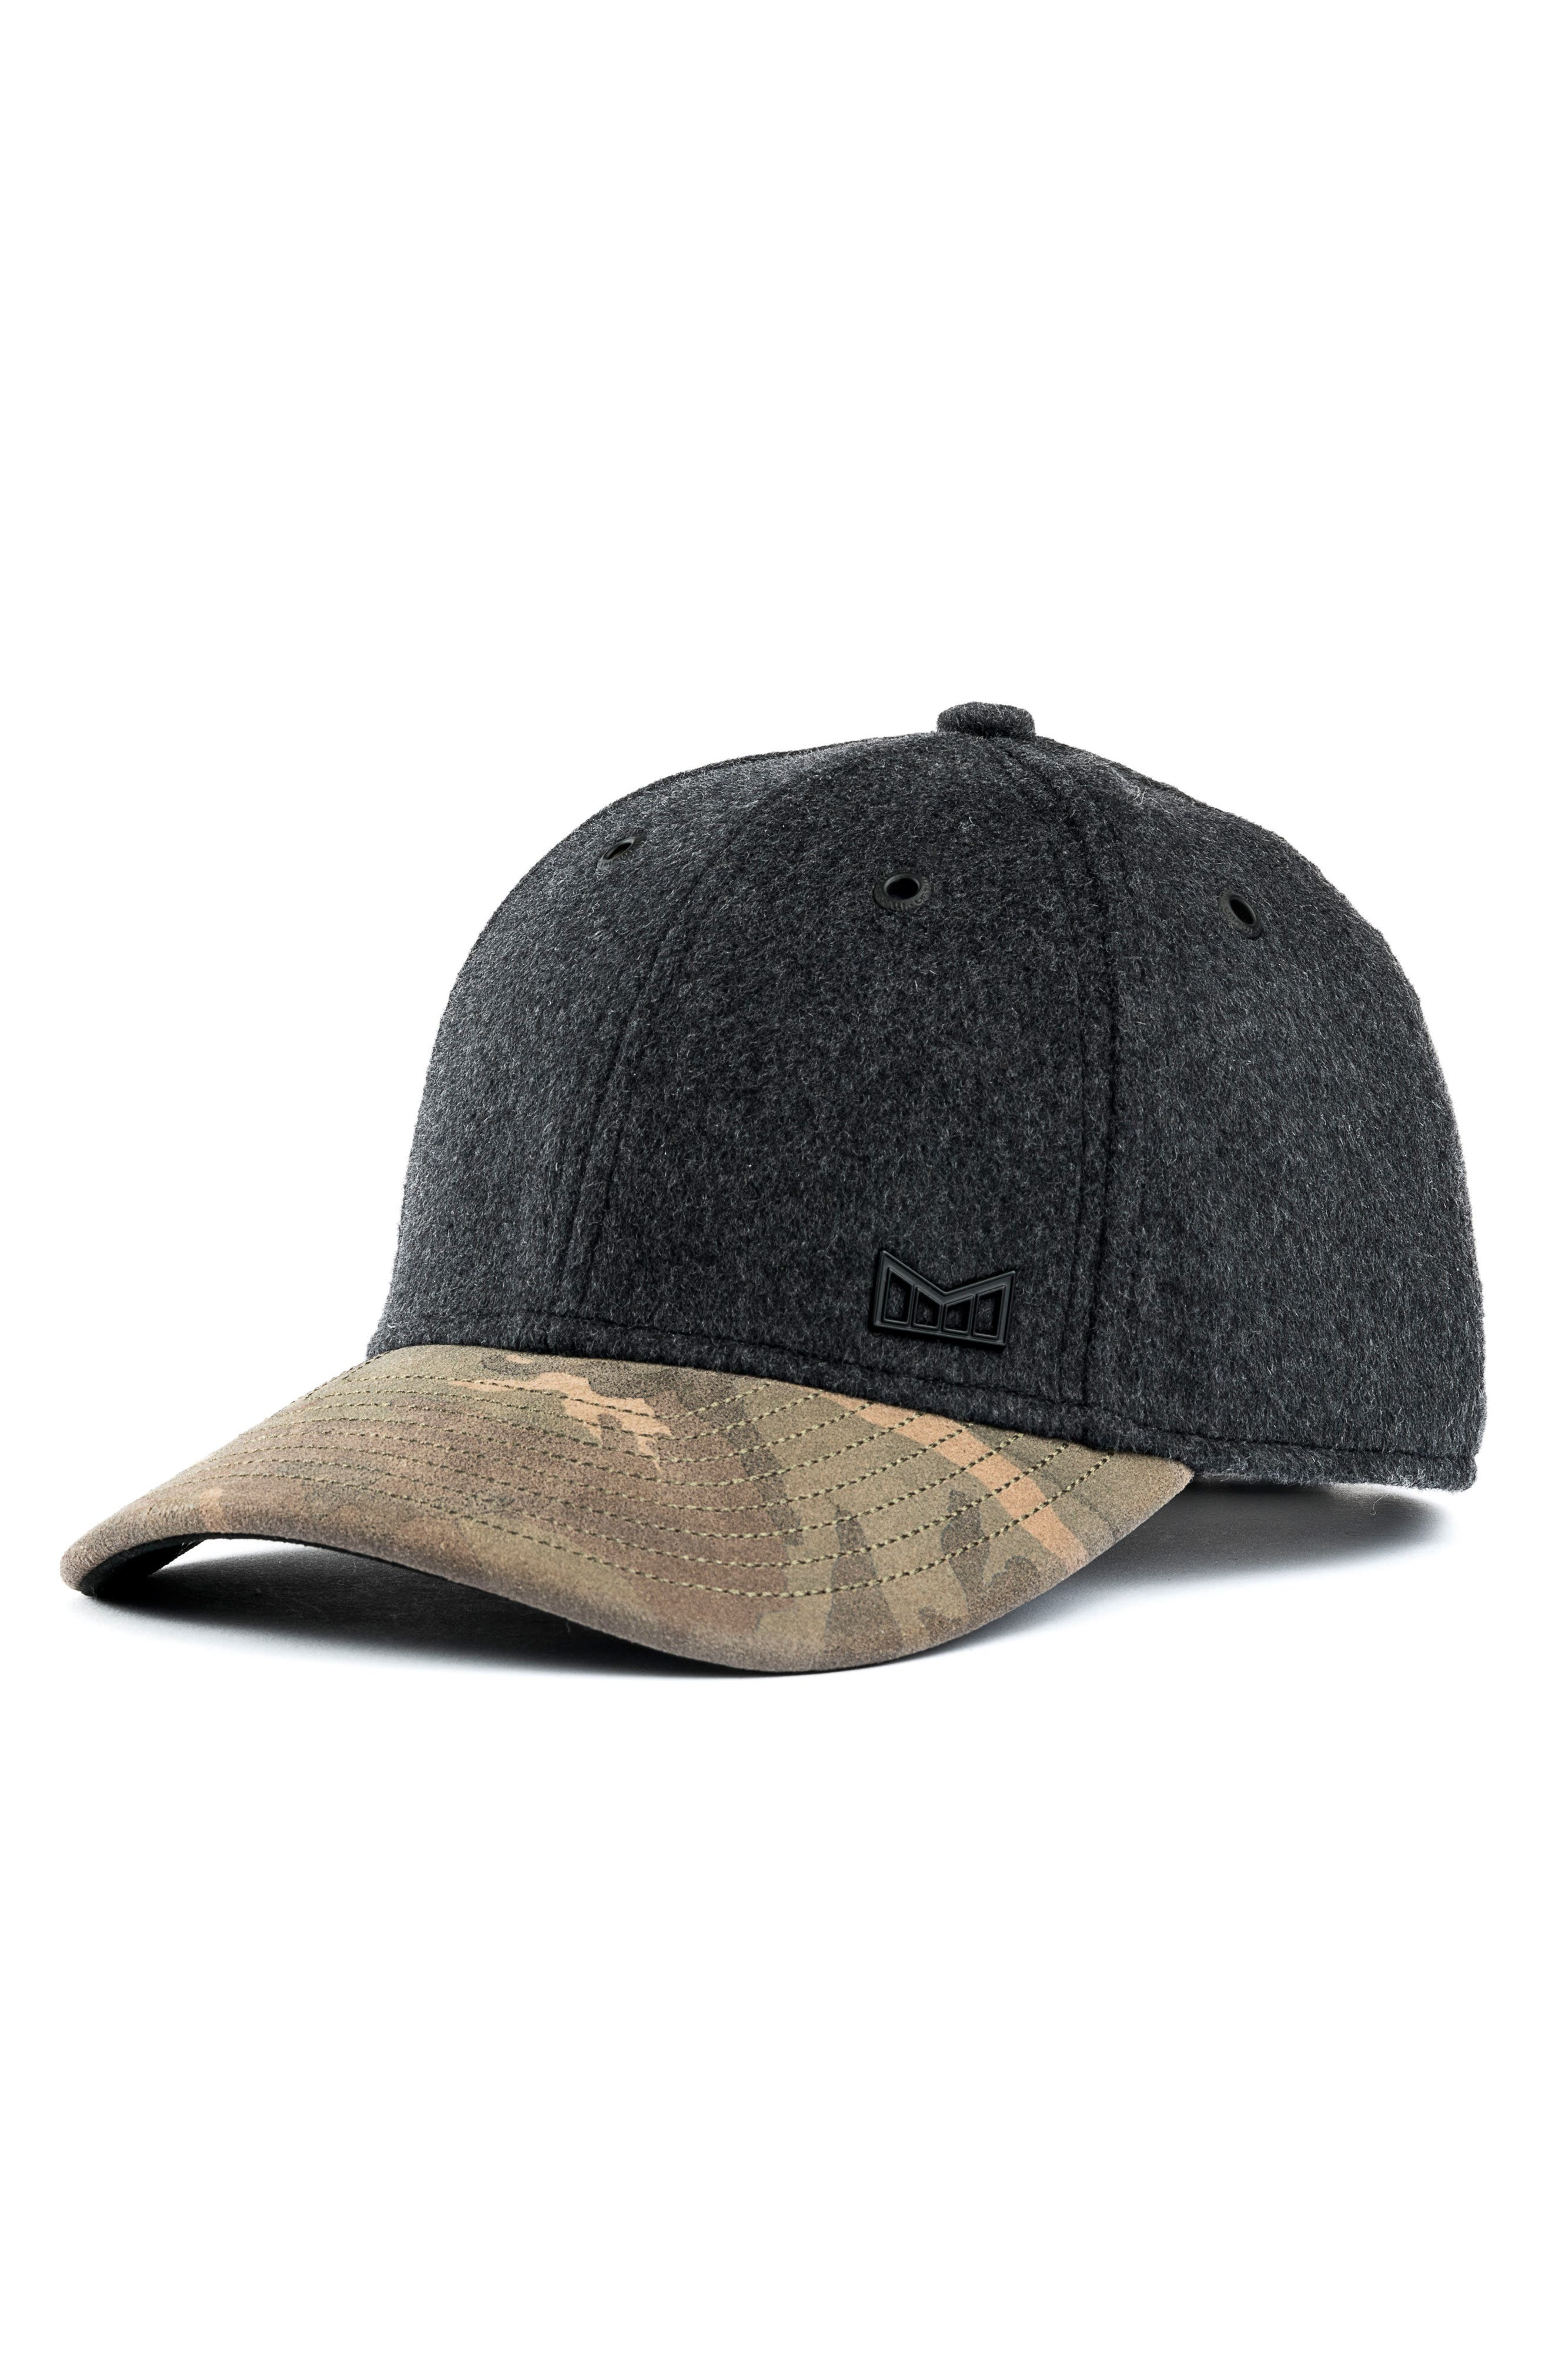 Maverick Ball Cap,                             Main thumbnail 1, color,                             Dark Charcoal